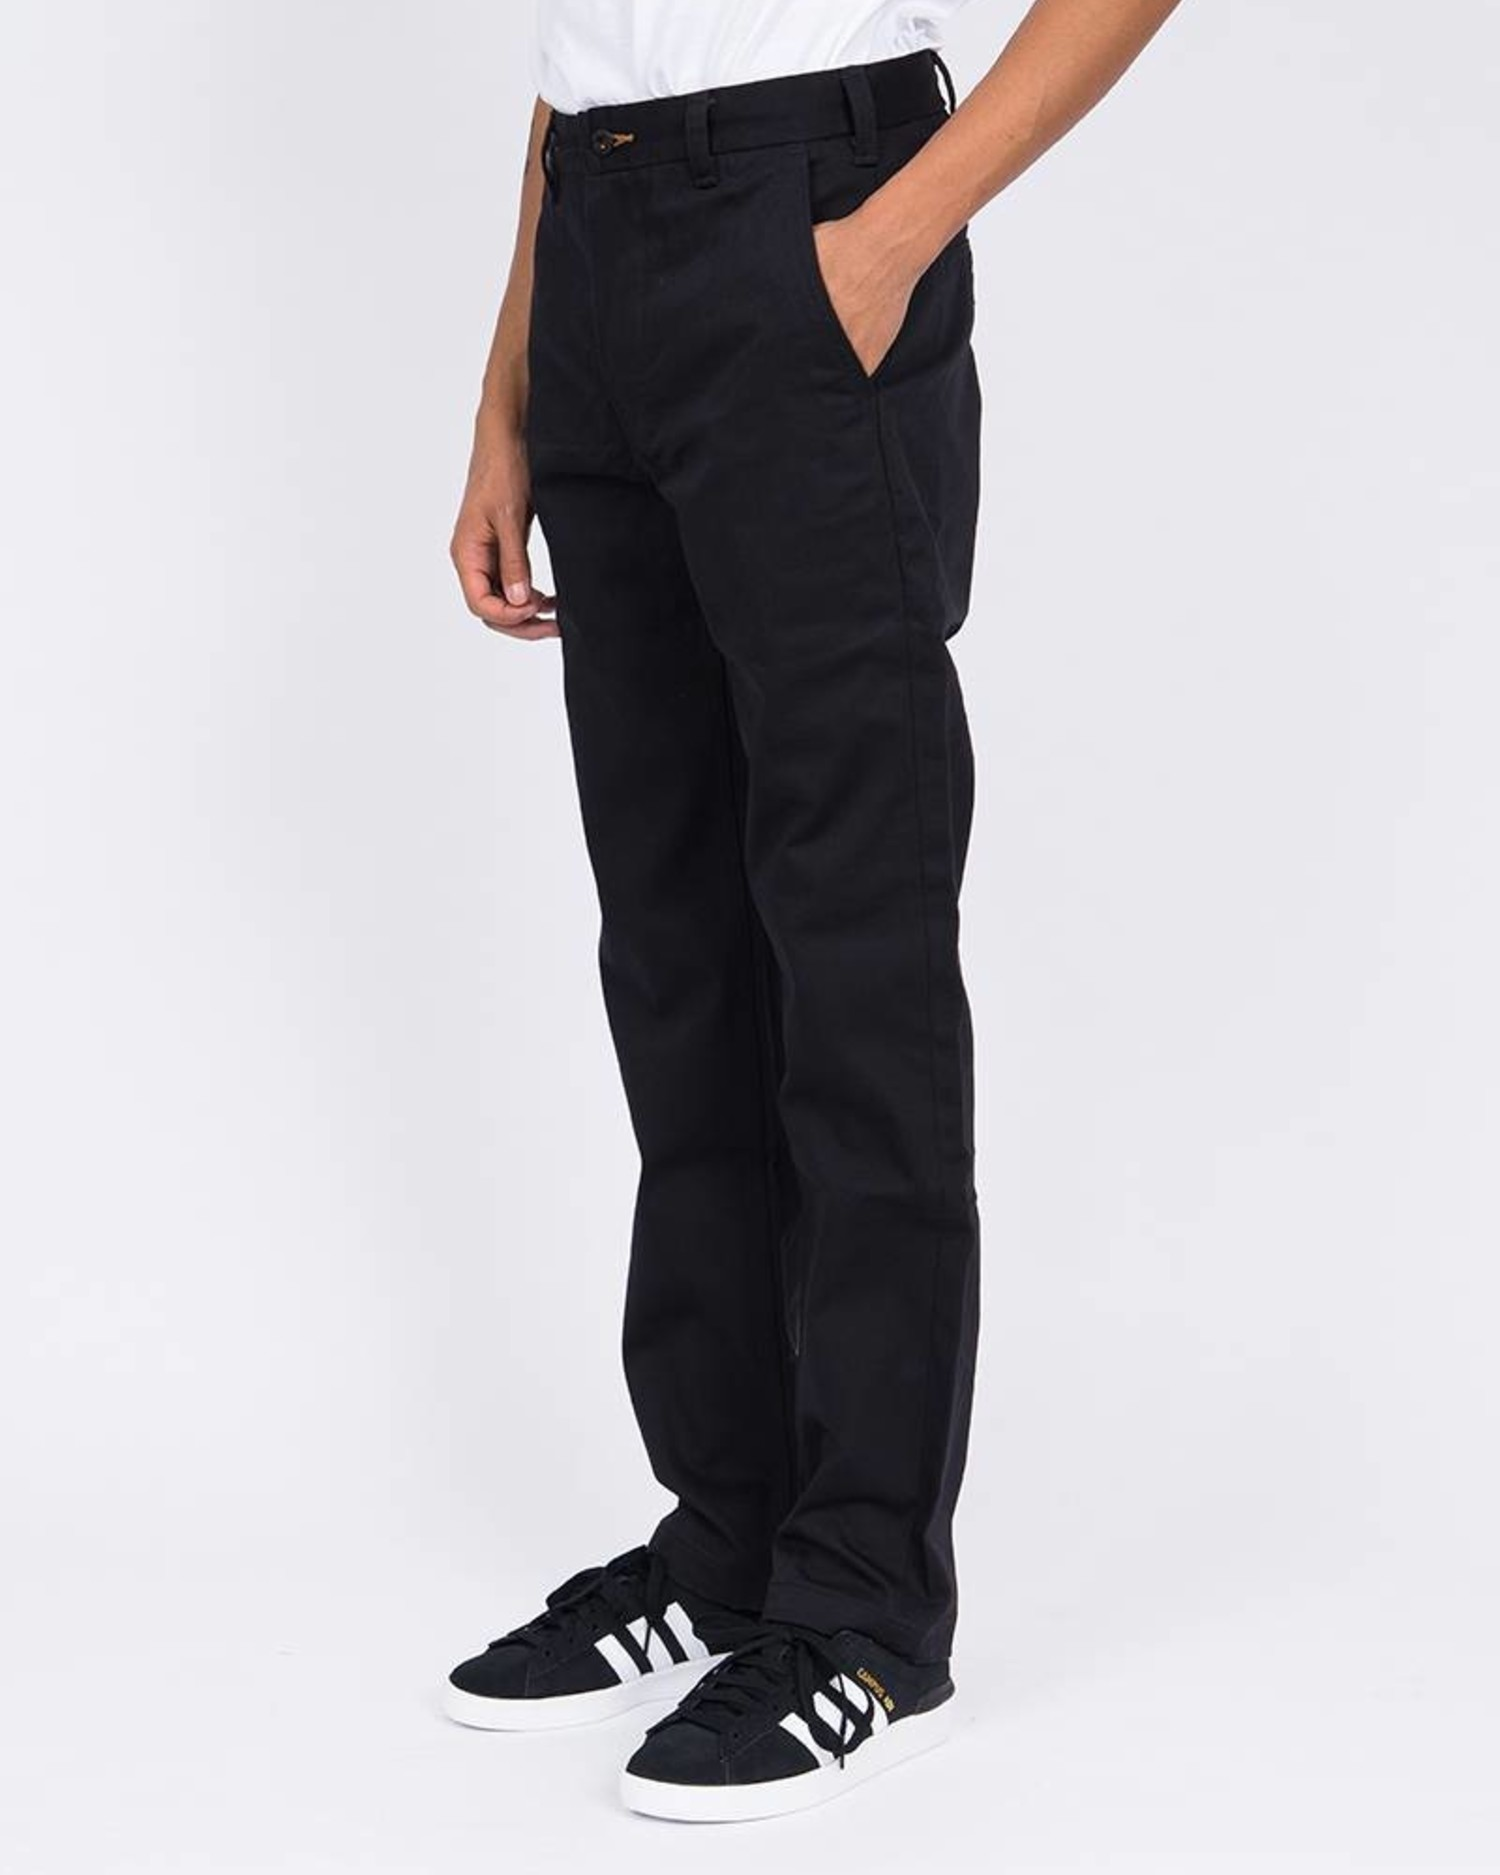 Levi's Skate Work Pants Black Twill